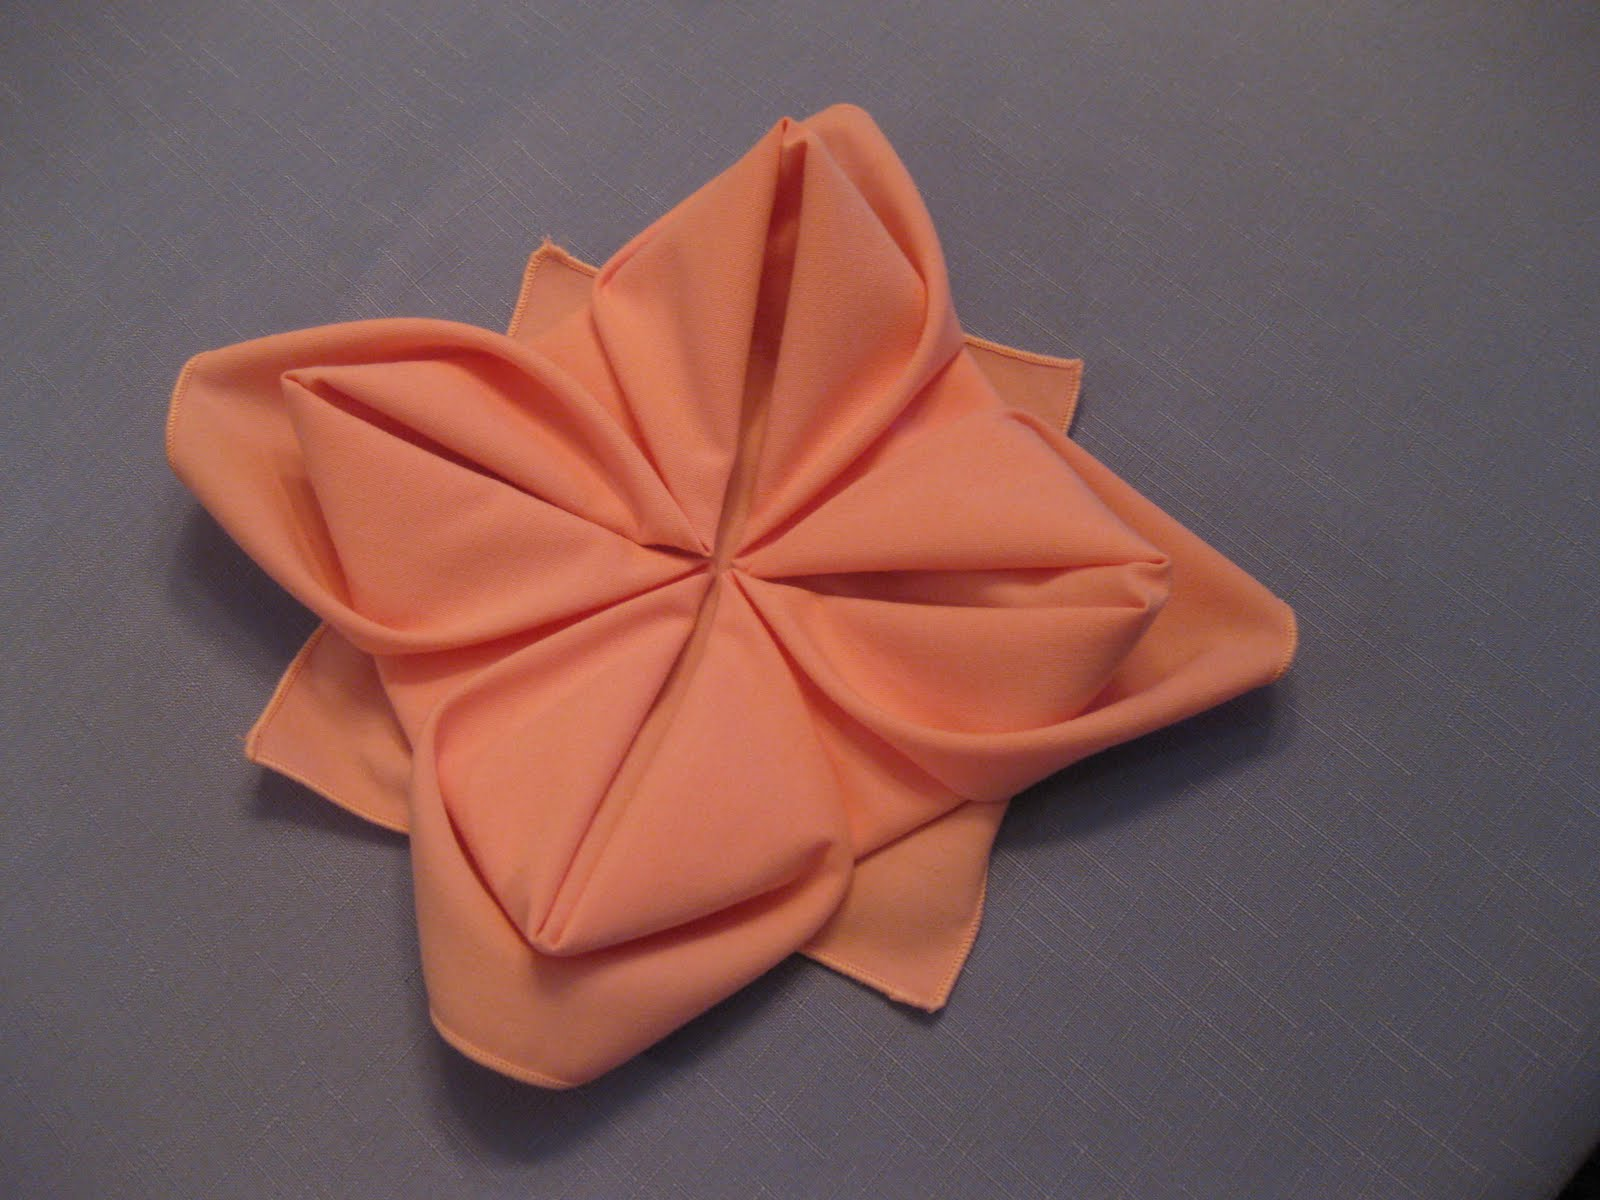 Napkin Folding Special Napkin Folding For Your Table  : napkinfolding flowers012 from partyinvitationsideas.com size 1600 x 1200 jpeg 163kB